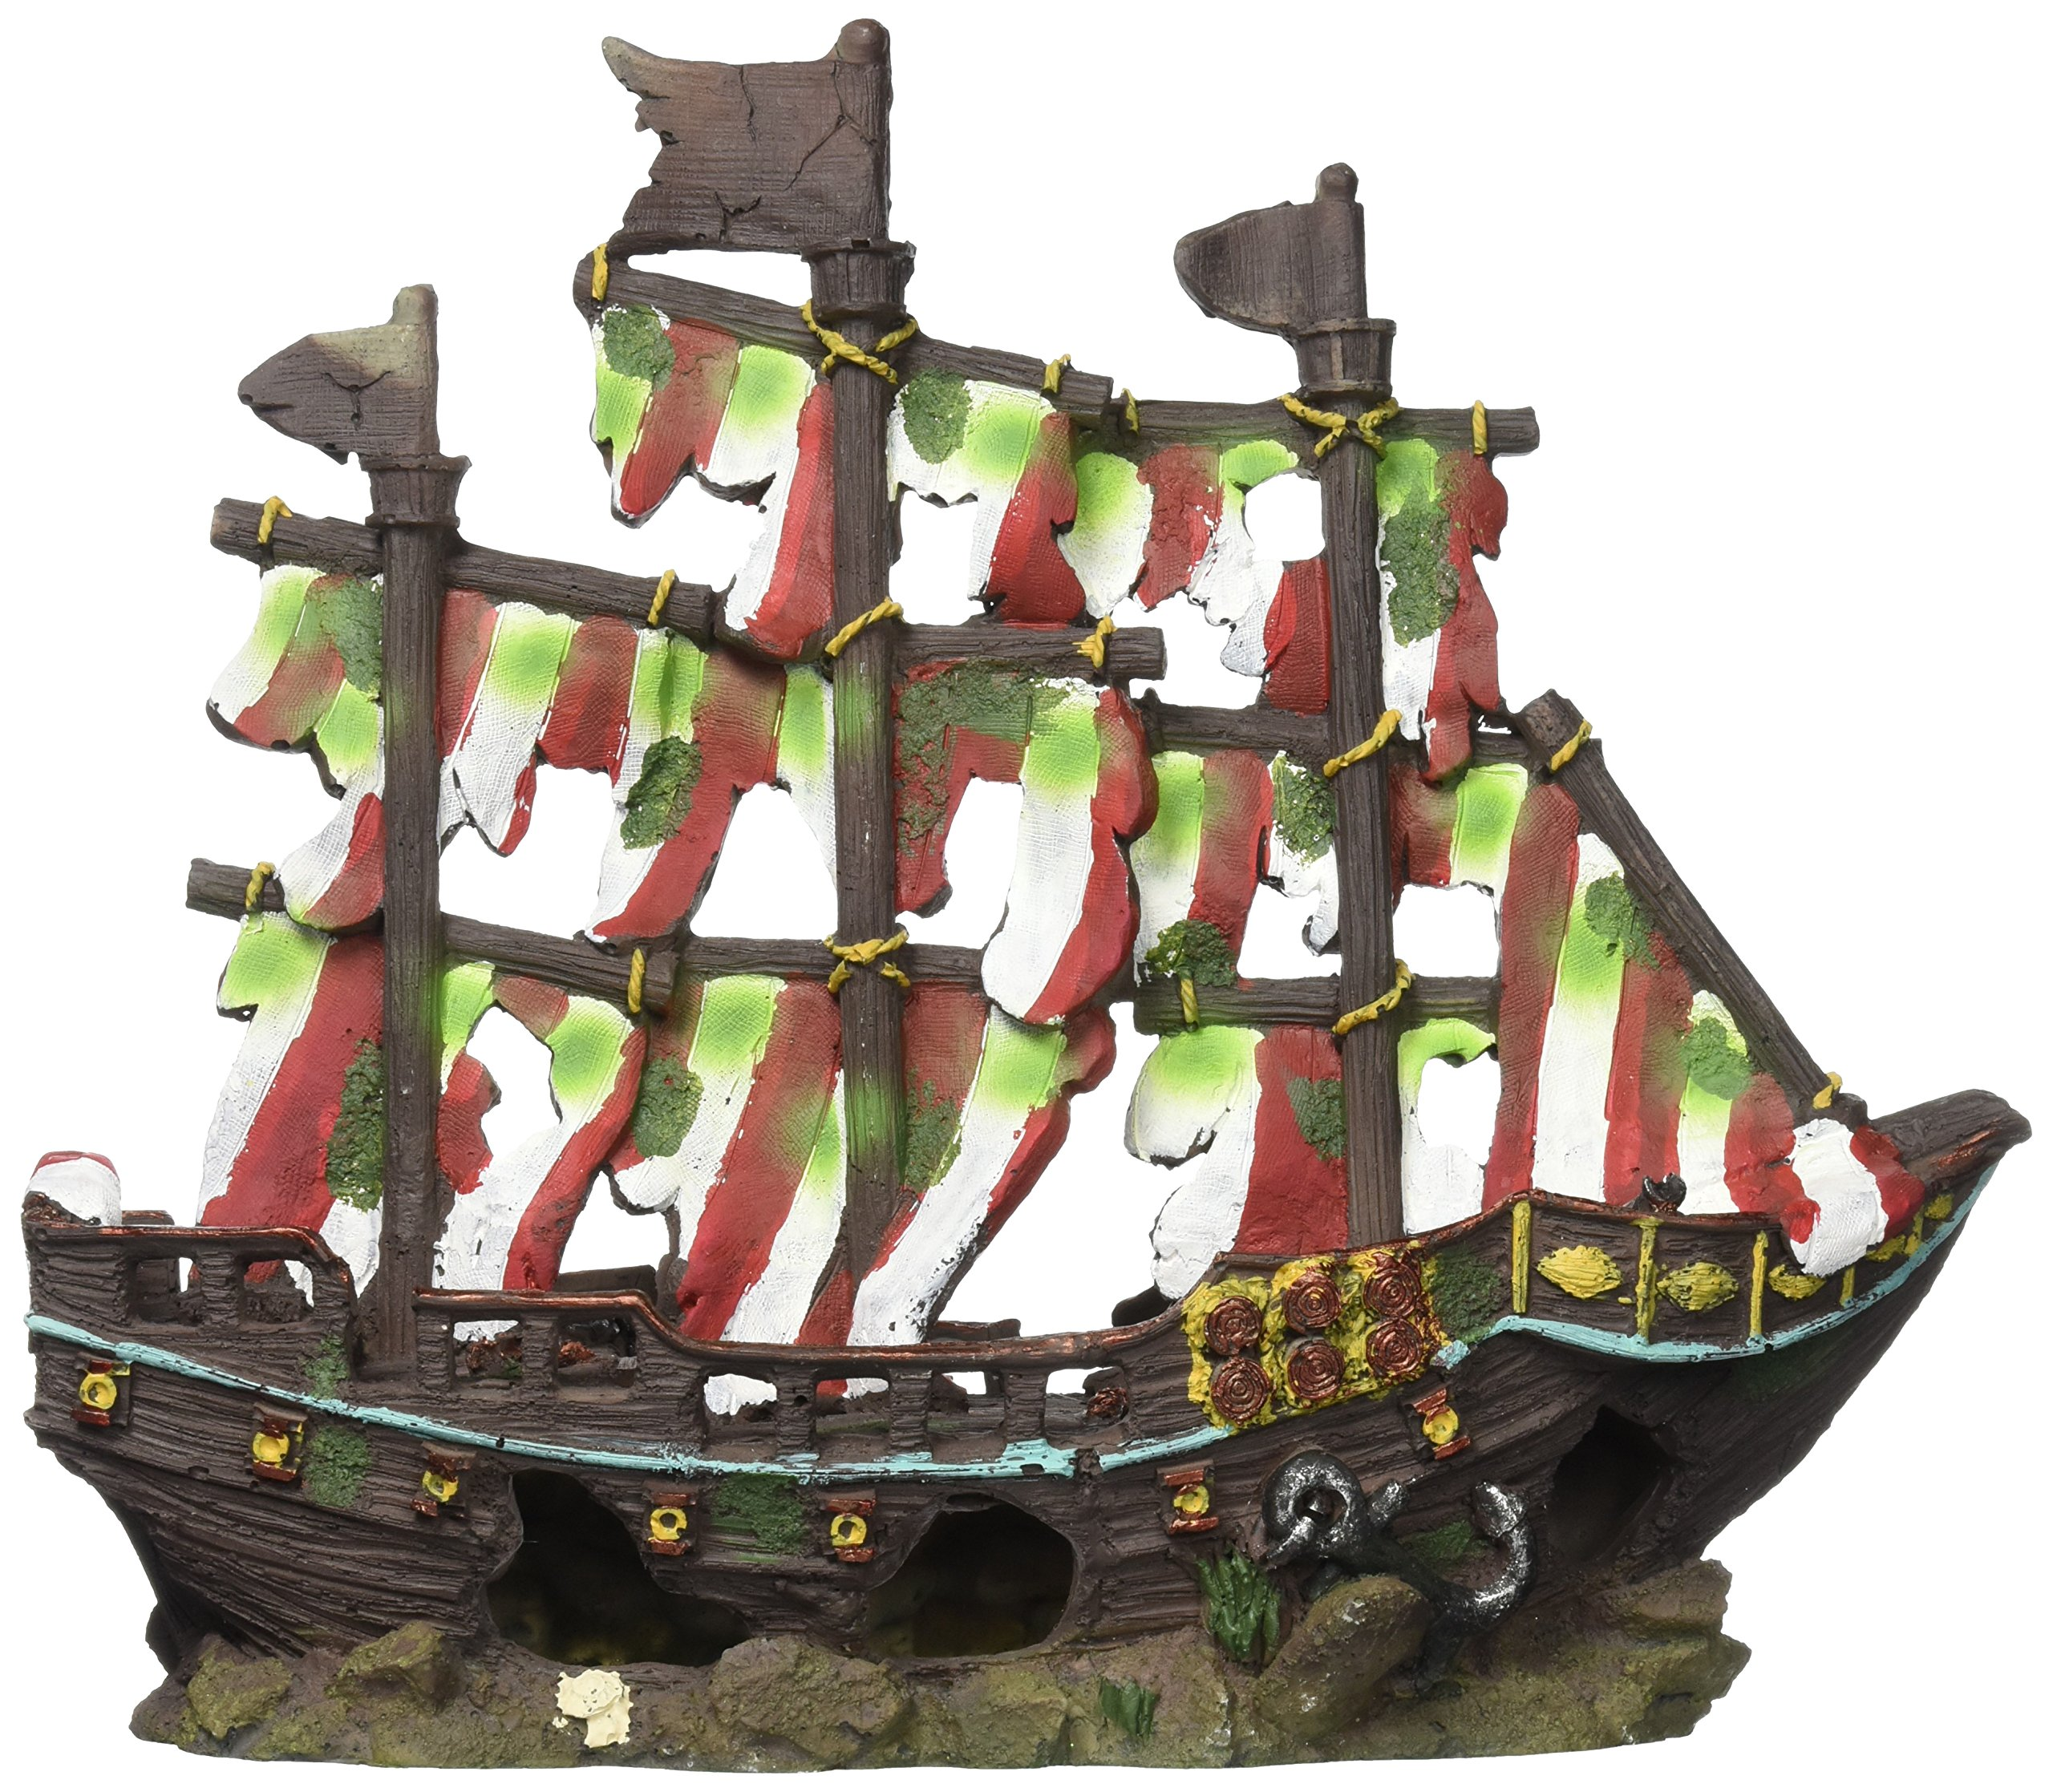 Penn Plax Striped Sail Shipwreck Aquarium Decoration Ornament Colorful Red and White Design 12 Inch by Penn Plax